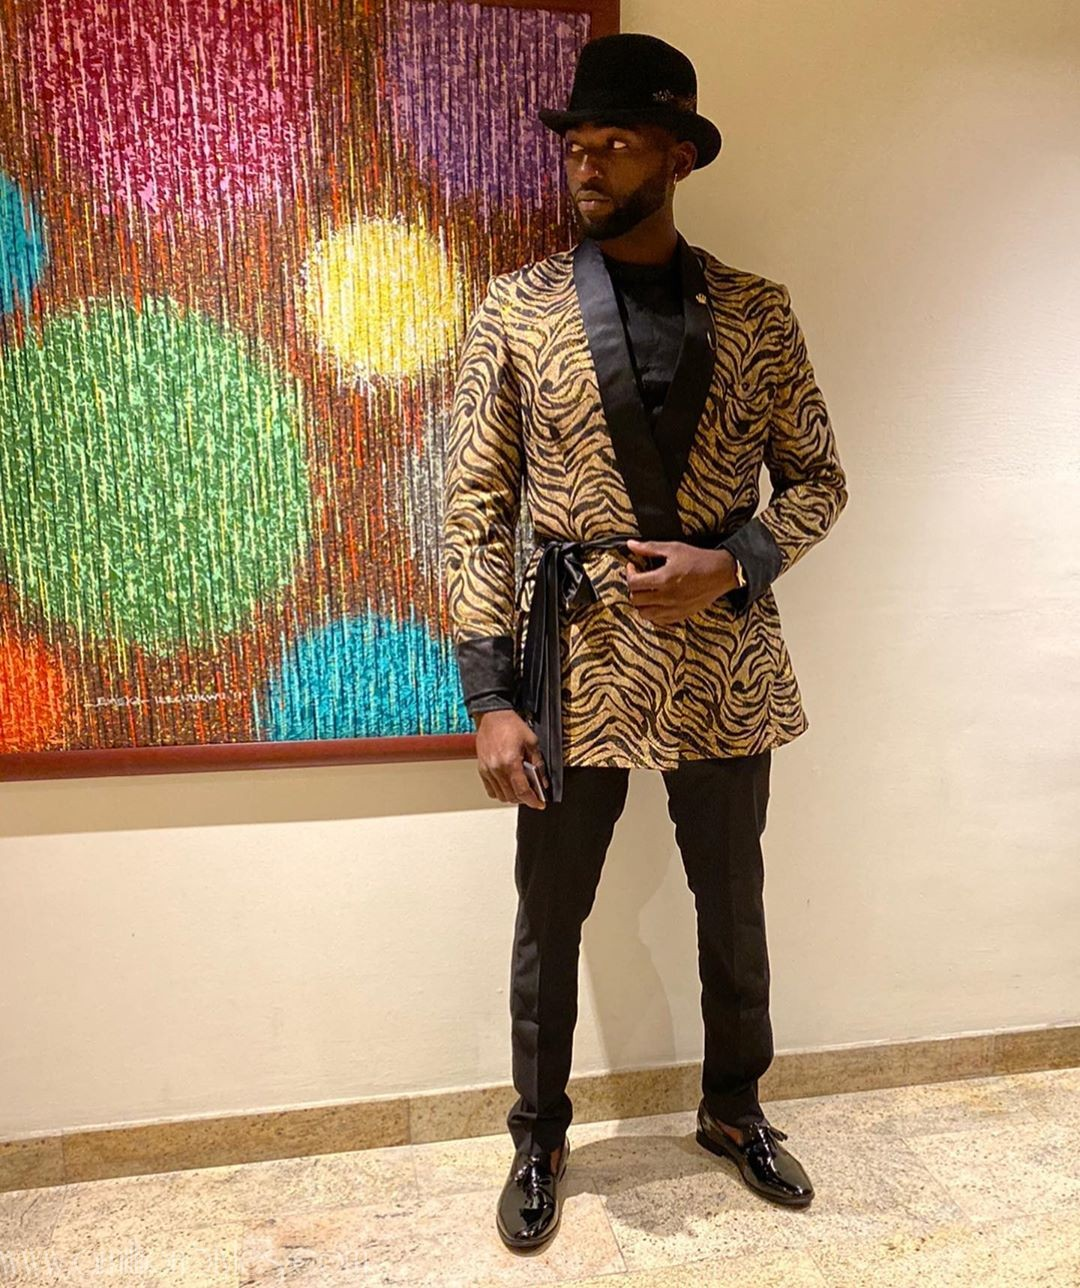 Styles From the 2019 Headies Awards